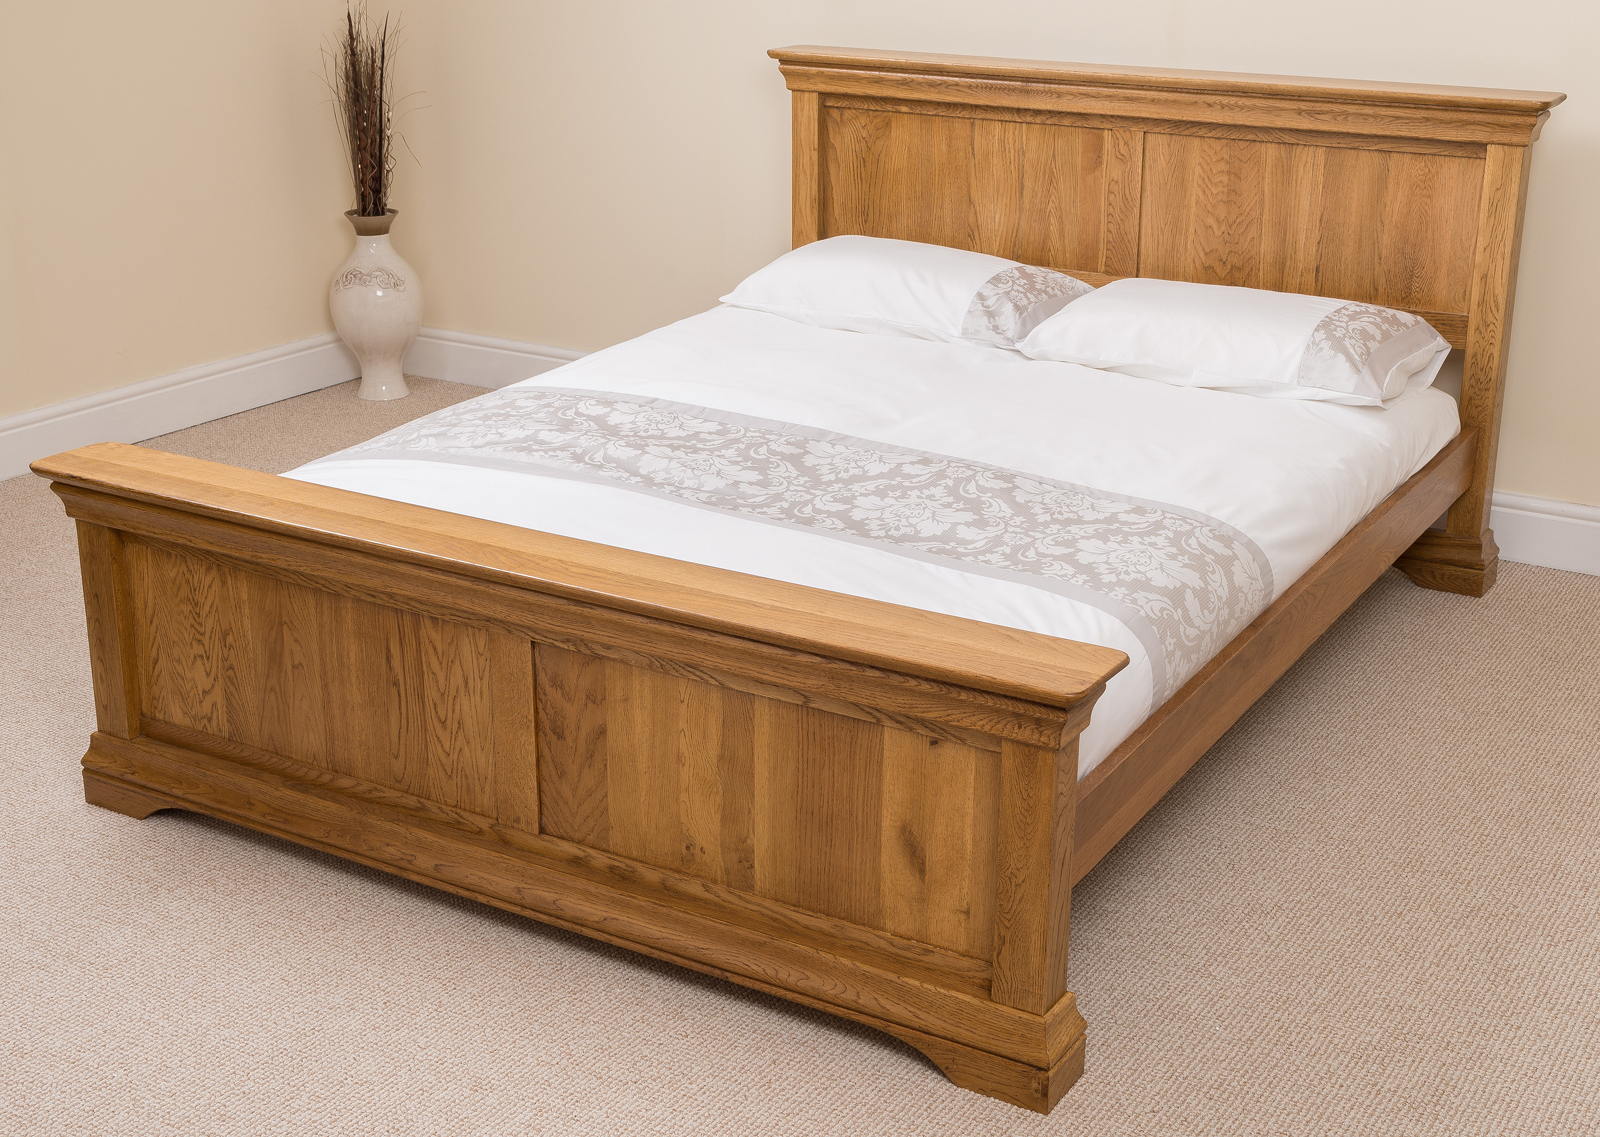 French rustic solid oak wood double bed frame bedroom Rustic bed frames